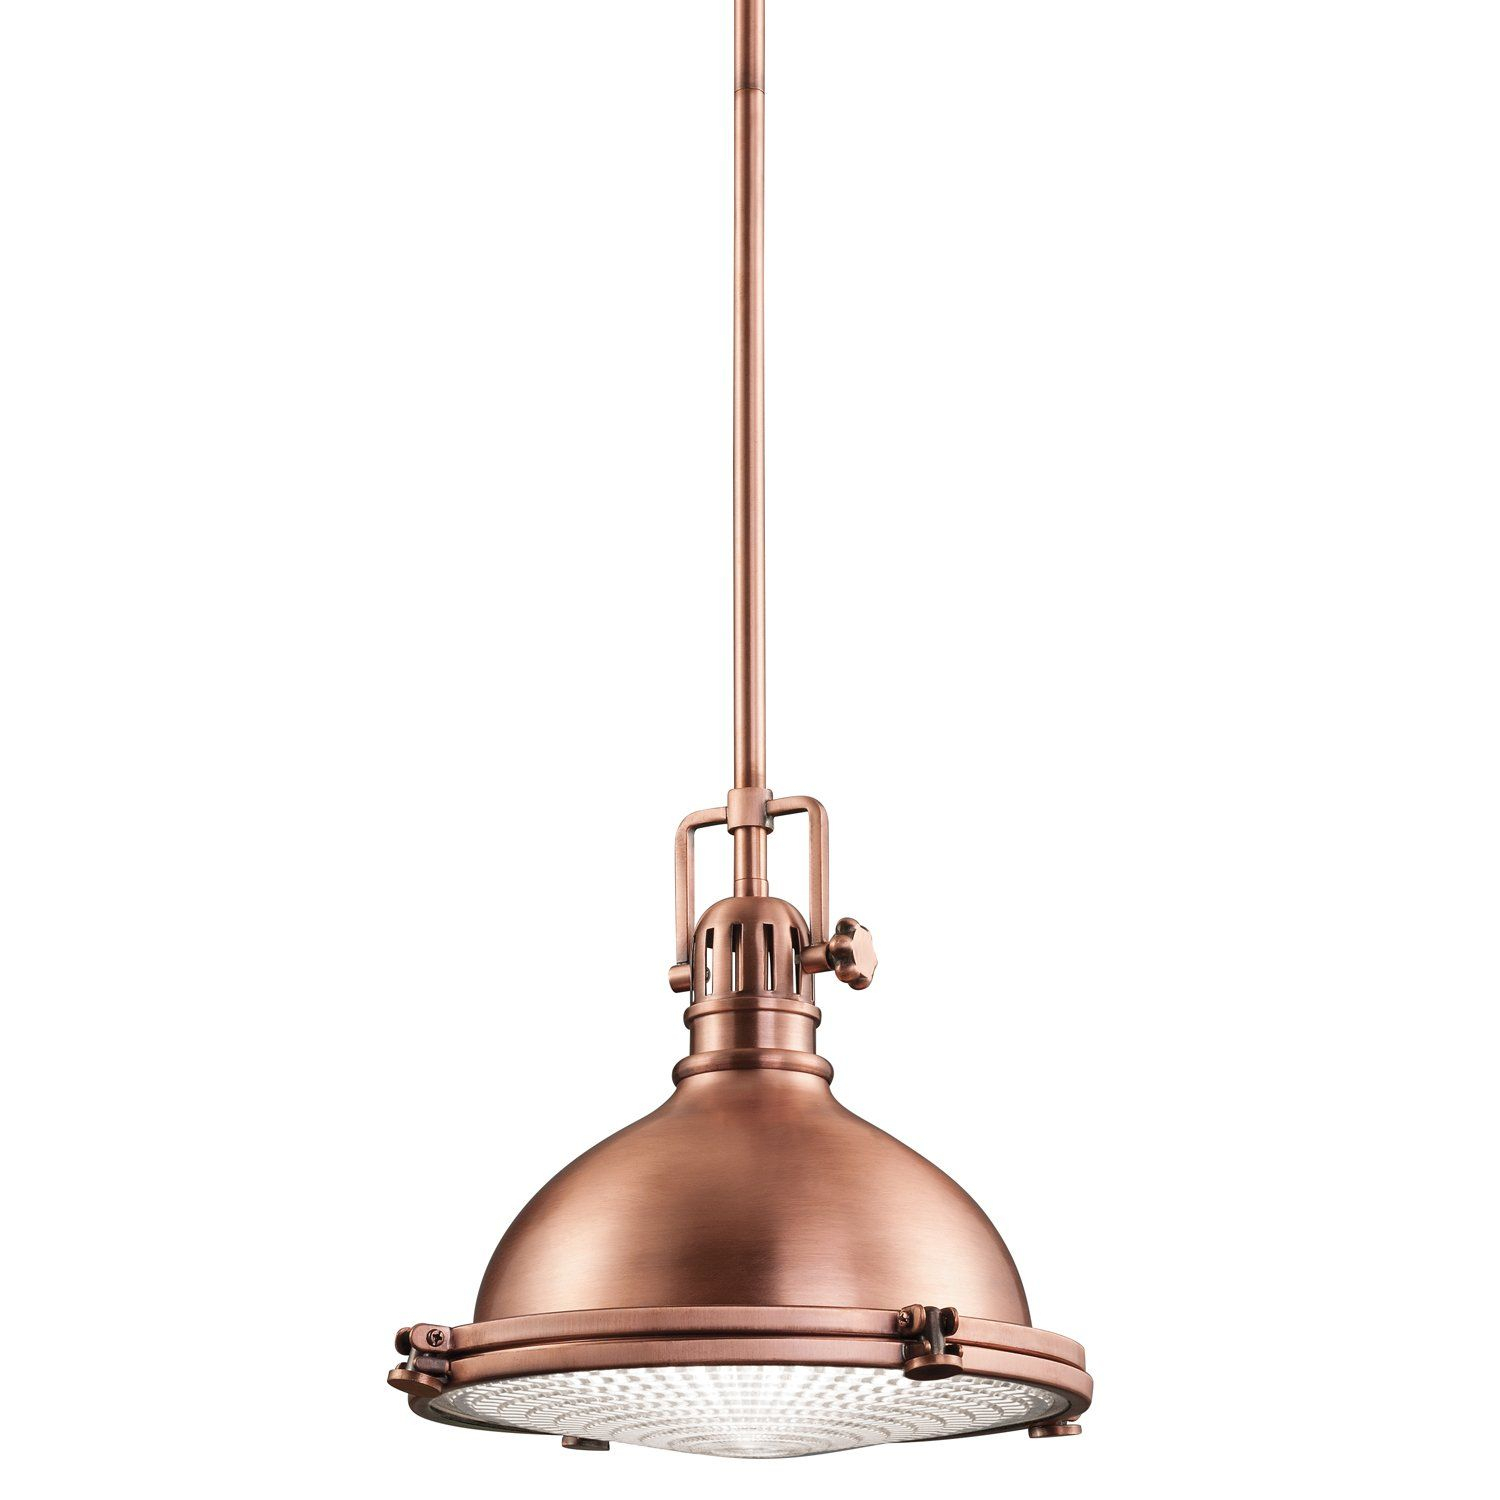 Kichler Lighting 2665aco Hatteras Bay 1lt Pendant, Antique Within Proctor 1 Light Bowl Pendants (View 21 of 30)